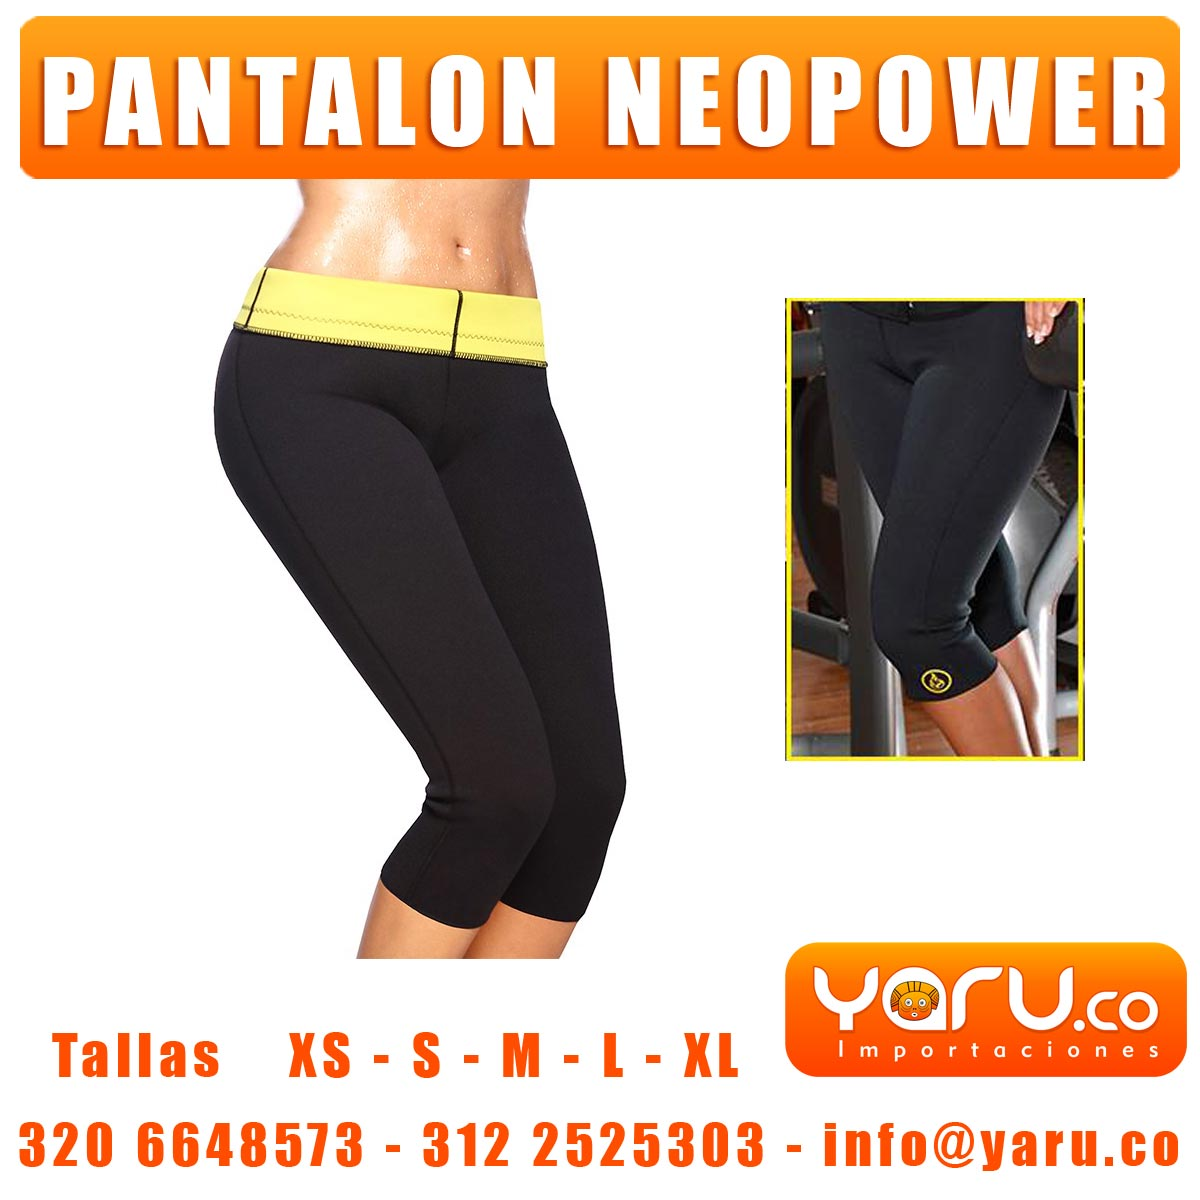 Pantalon Neopower HotShapper